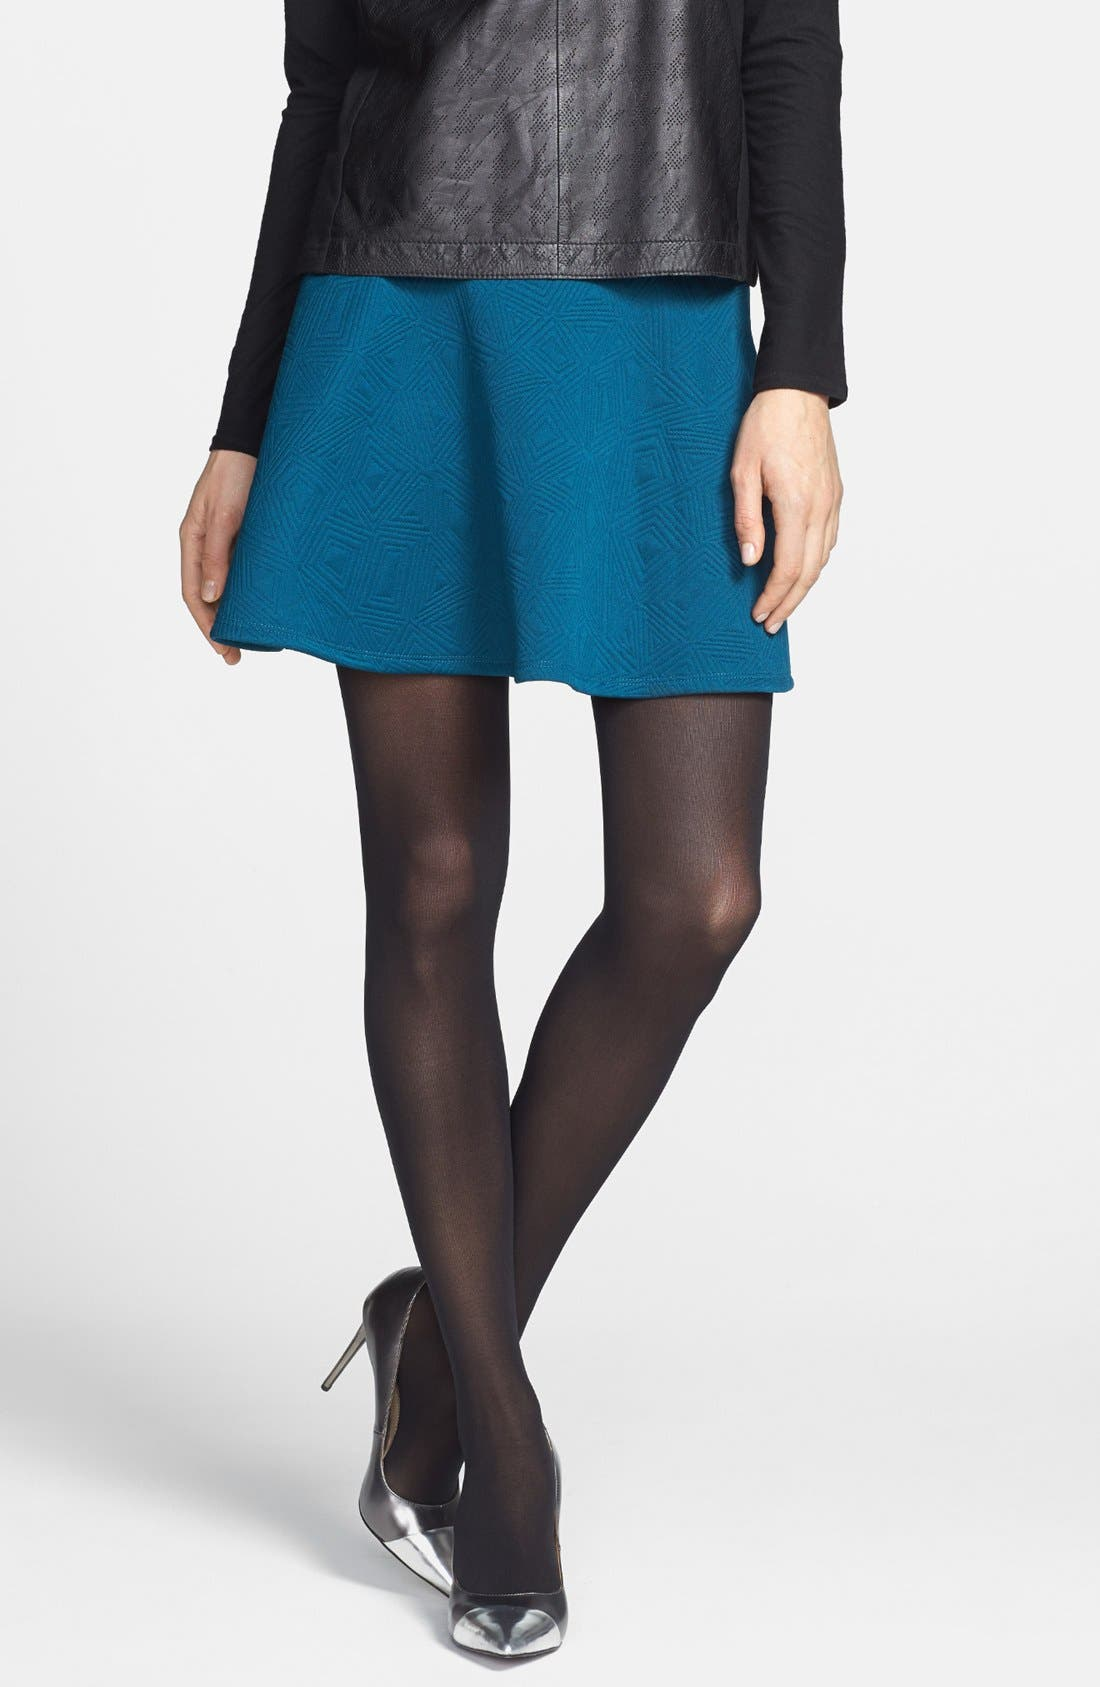 Alternate Image 1 Selected - DKNY '412' Control Top Opaque Tights